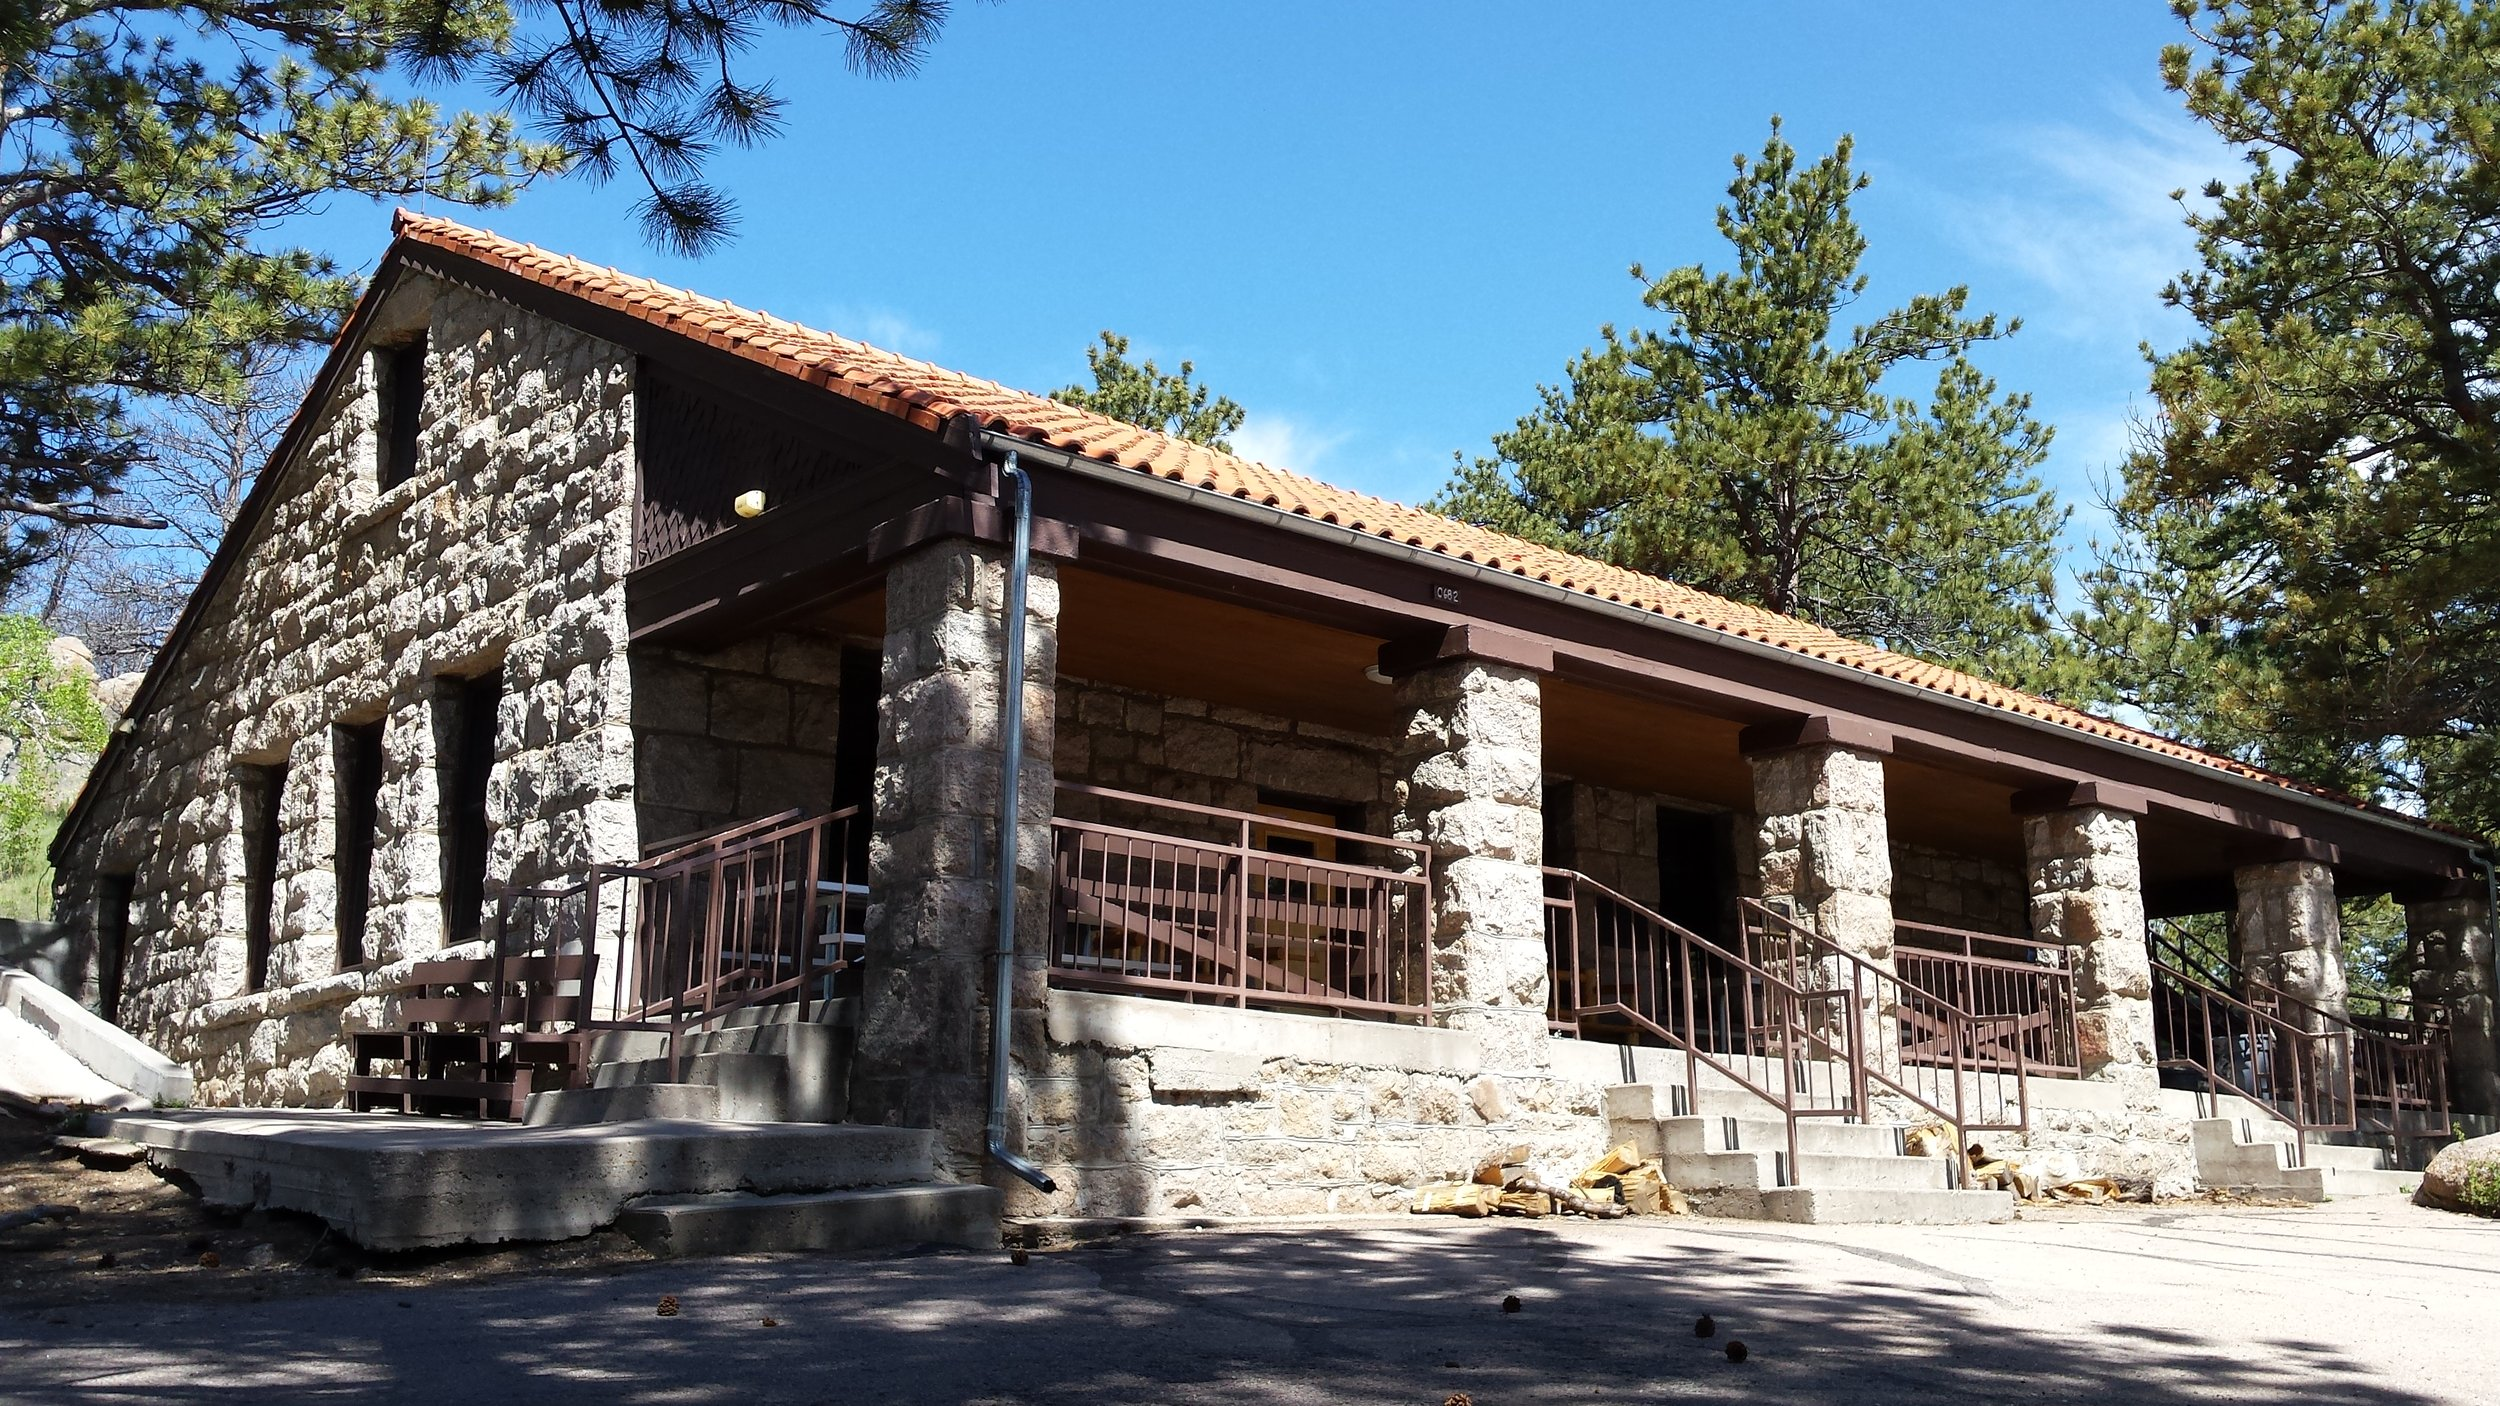 Hynds Lodge is nestled against a hill amongst the trees north of Curt Gowdy State Park